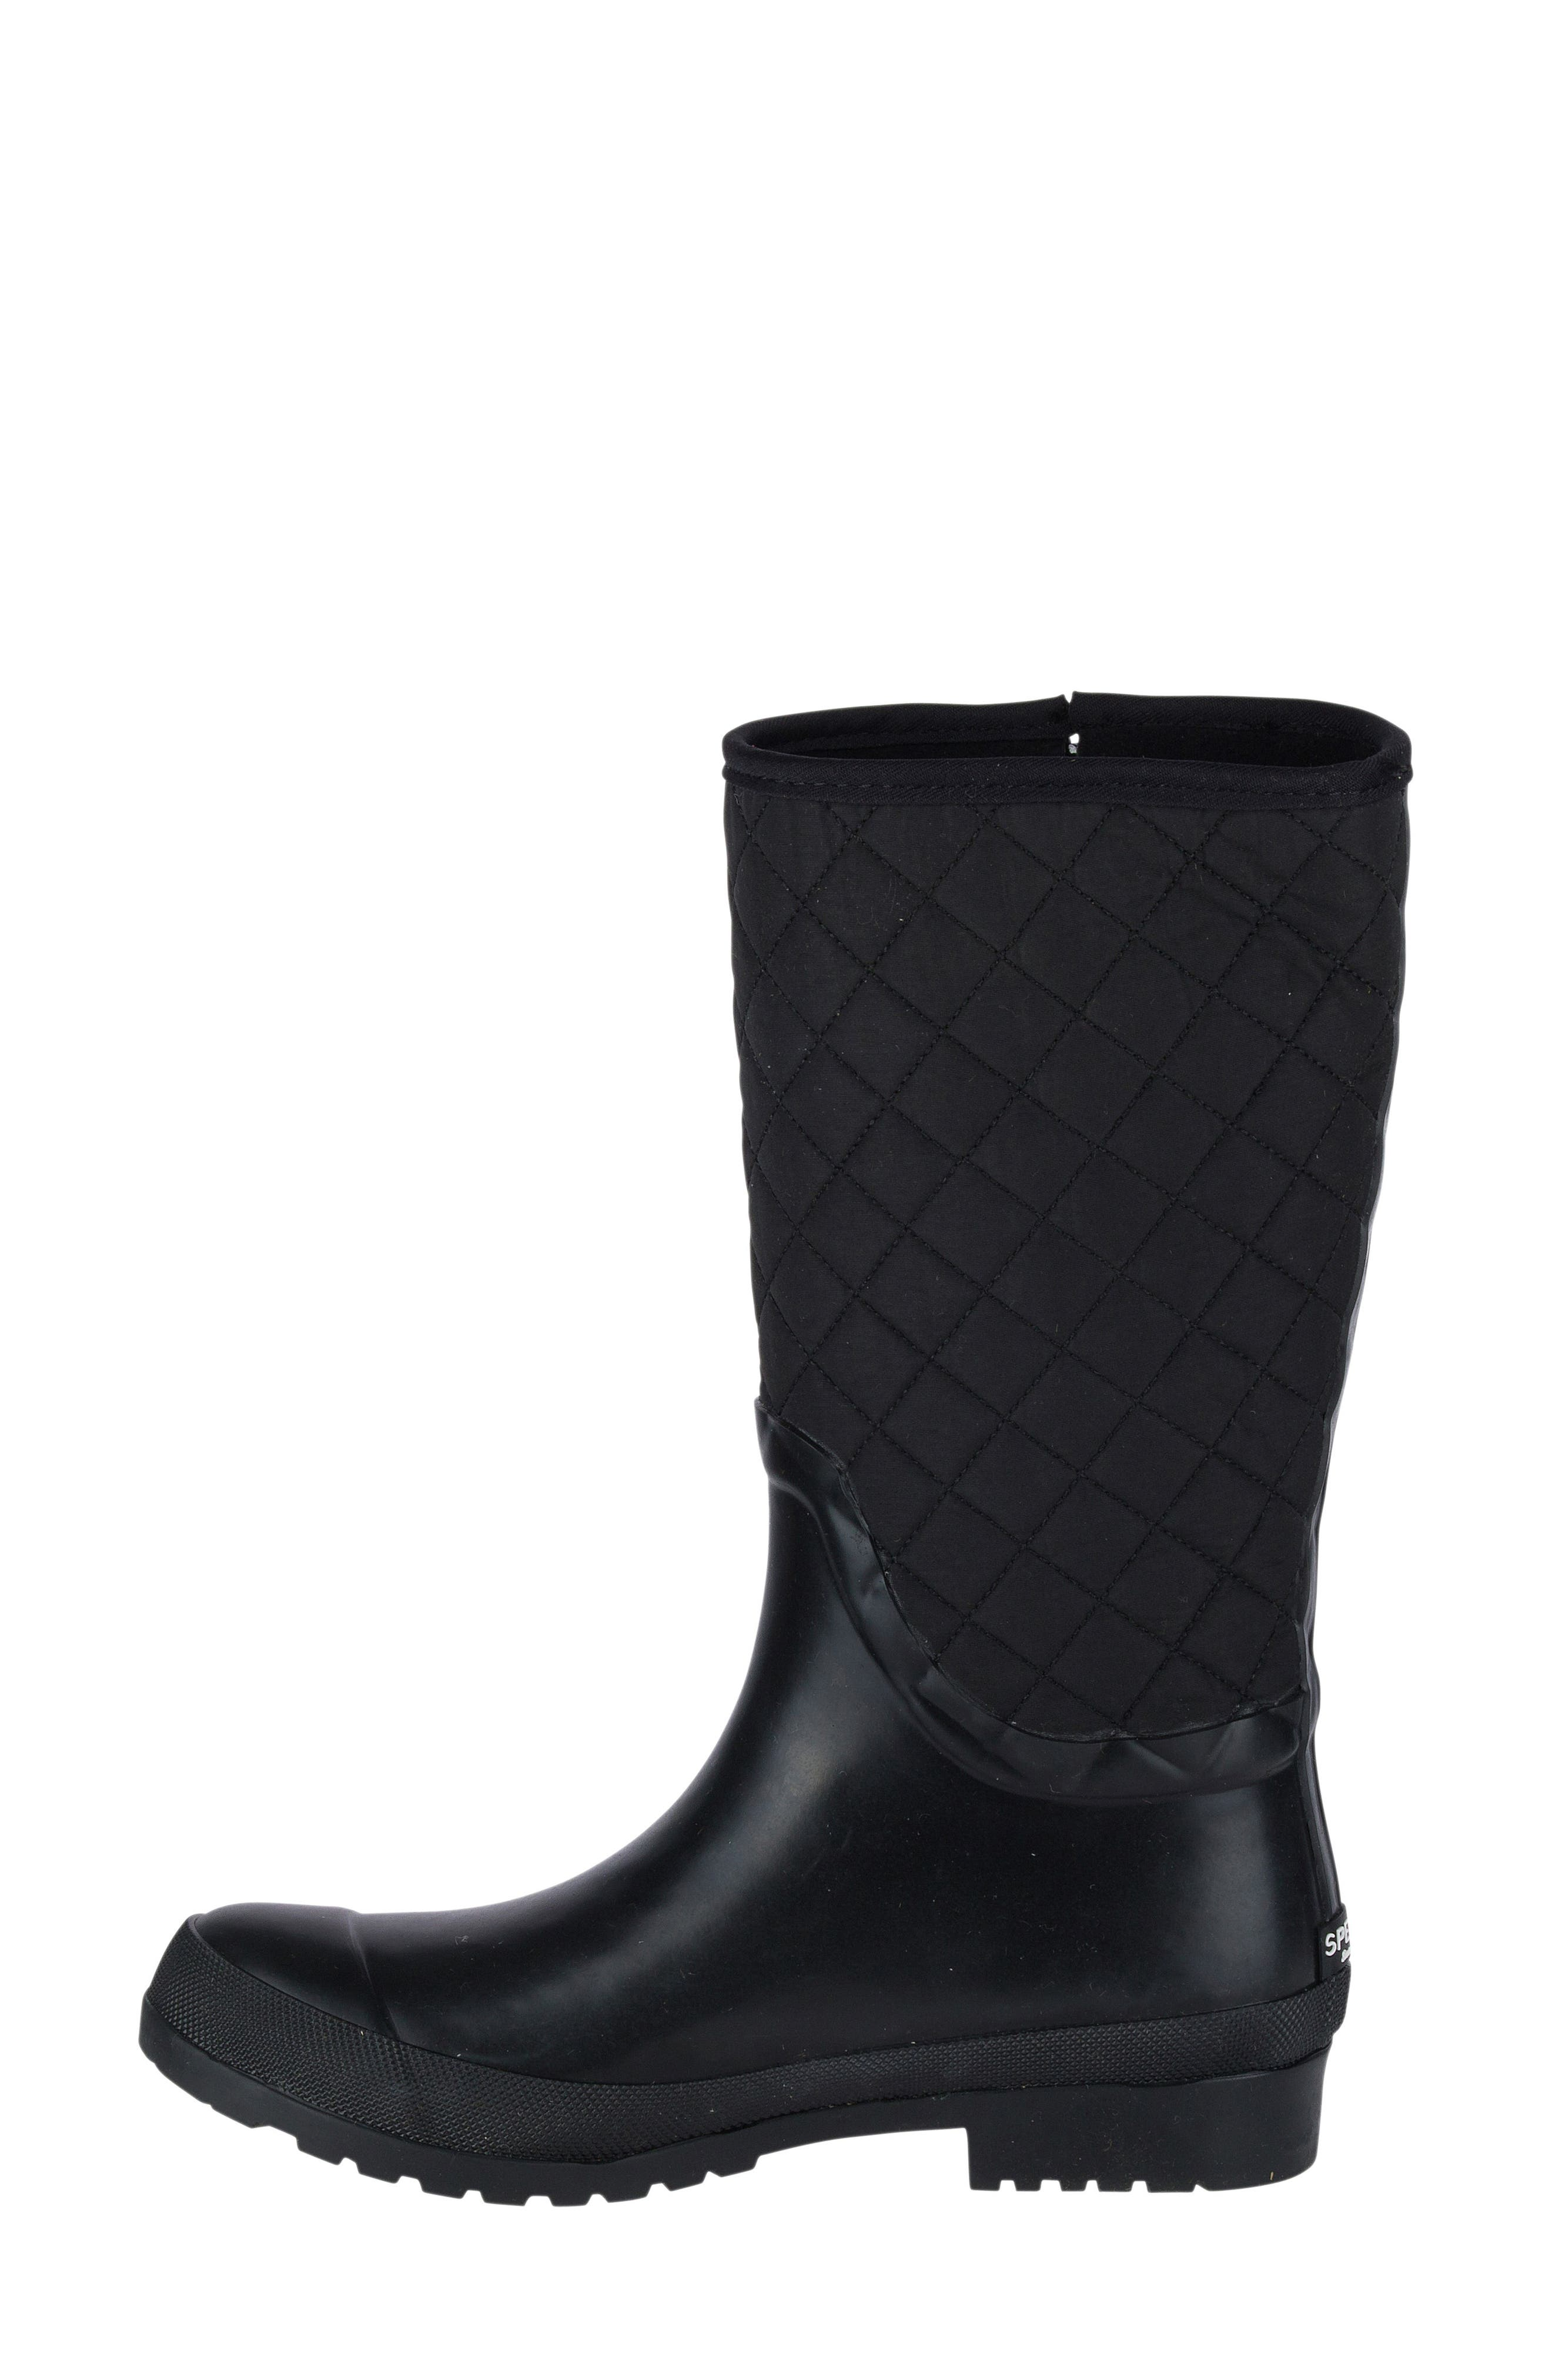 Walker Quilted Rain Boot,                             Alternate thumbnail 3, color,                             001